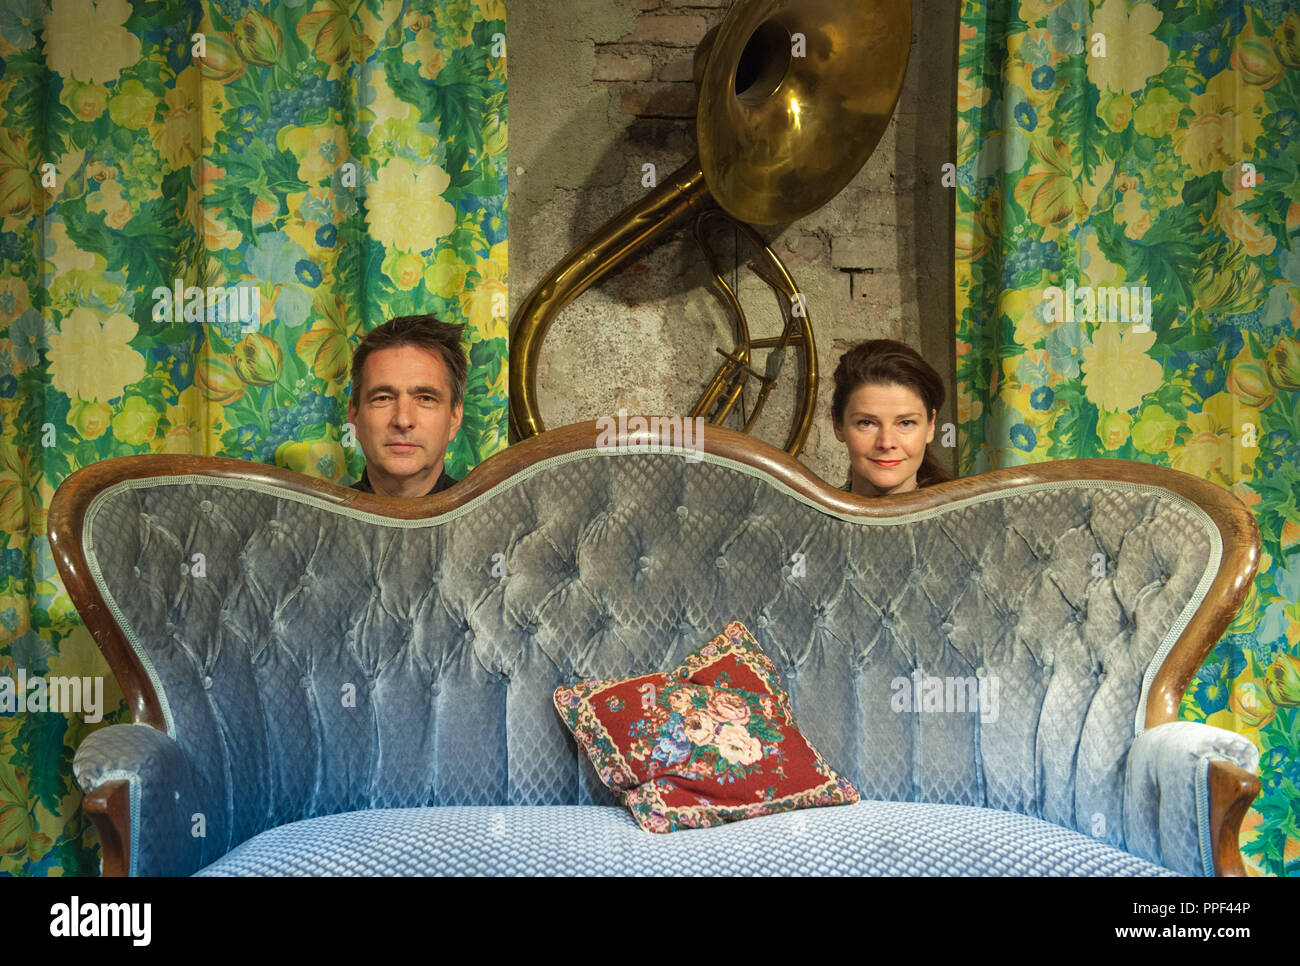 Tinka Kleffner and Roland Fritsch, organizers of the literature series 'Fabelhafte Couchpoeten' (Fabulous couch poets) at Ars Musica in Stemmerhof in the Plinganserstrasse. The picture shows them with their Viennese Baroque sofa on the stage. - Stock Image